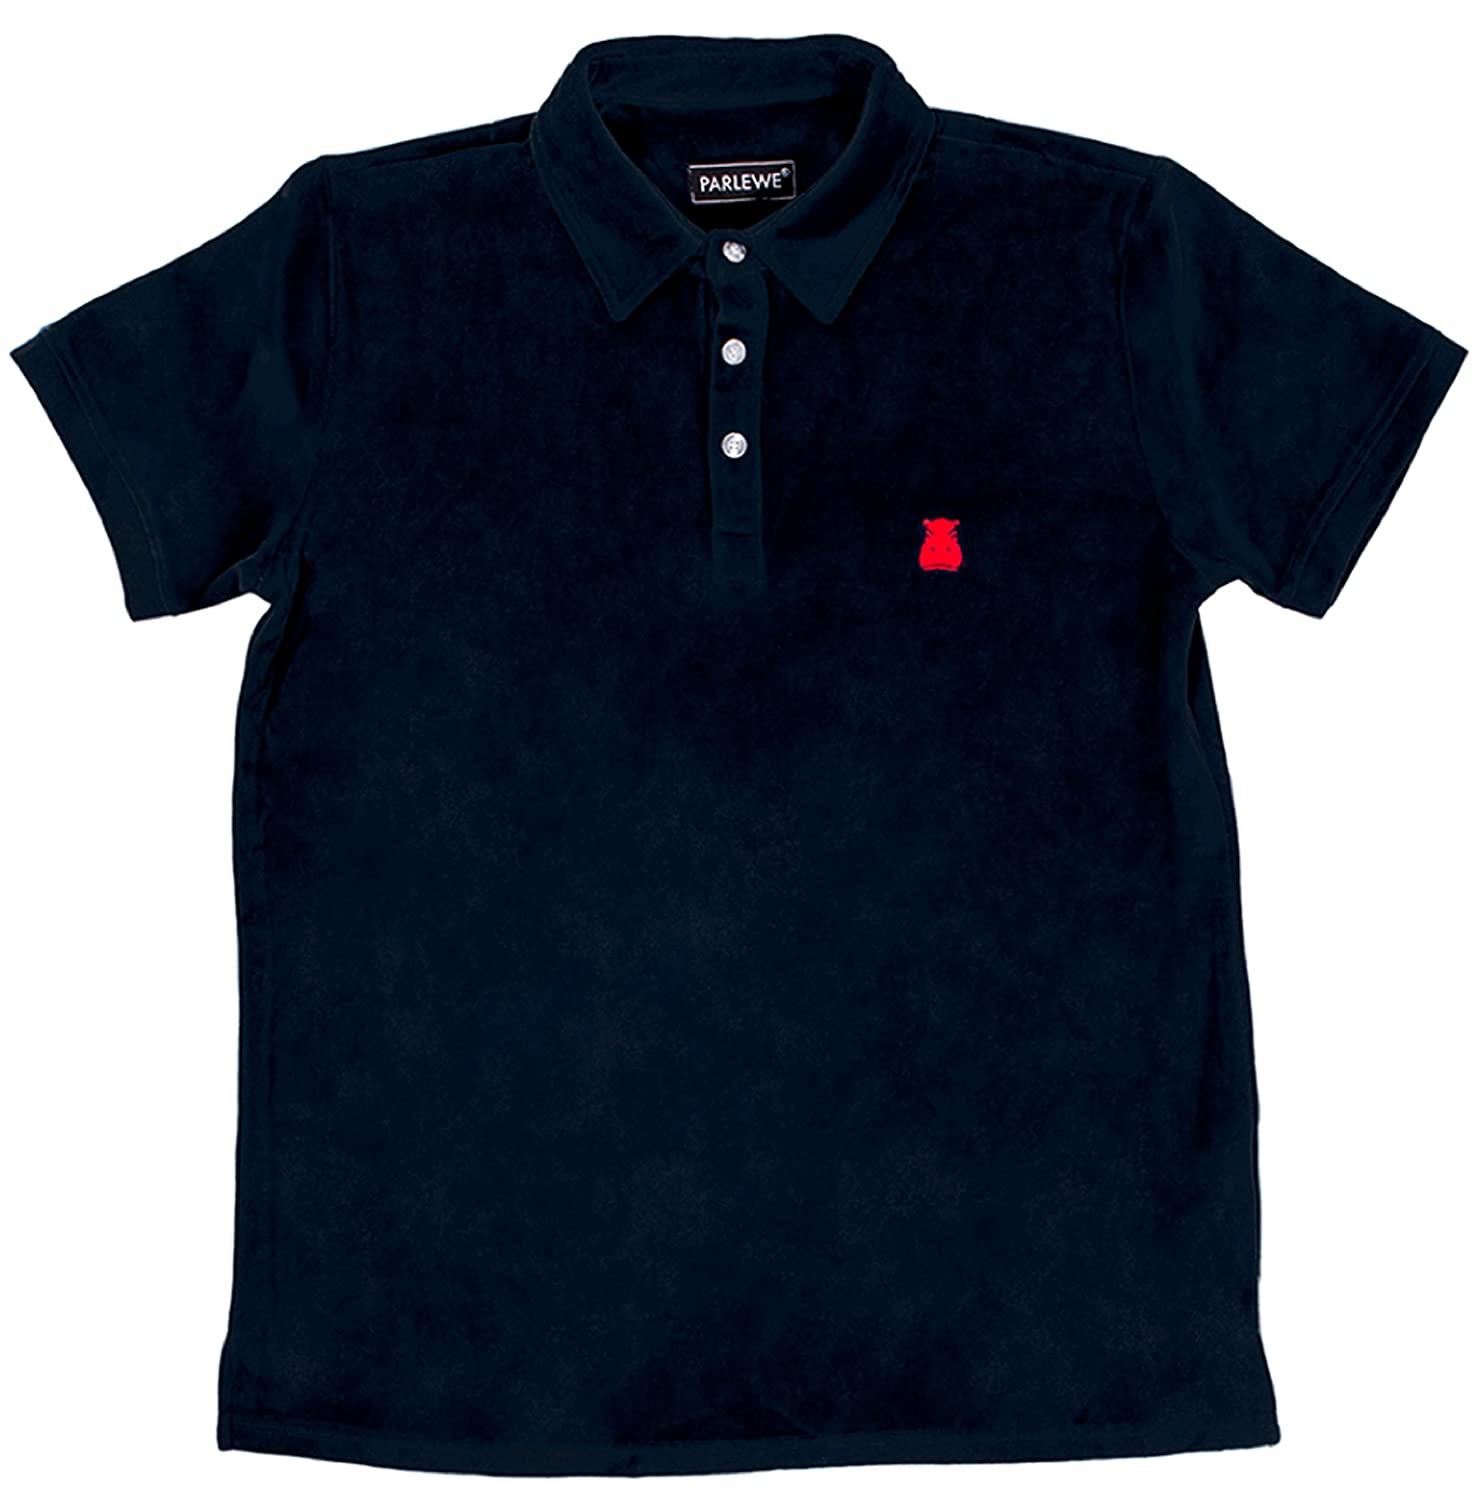 860fab33140829 Top 10 wholesale Crazy Polo Shirts - Chinabrands.com